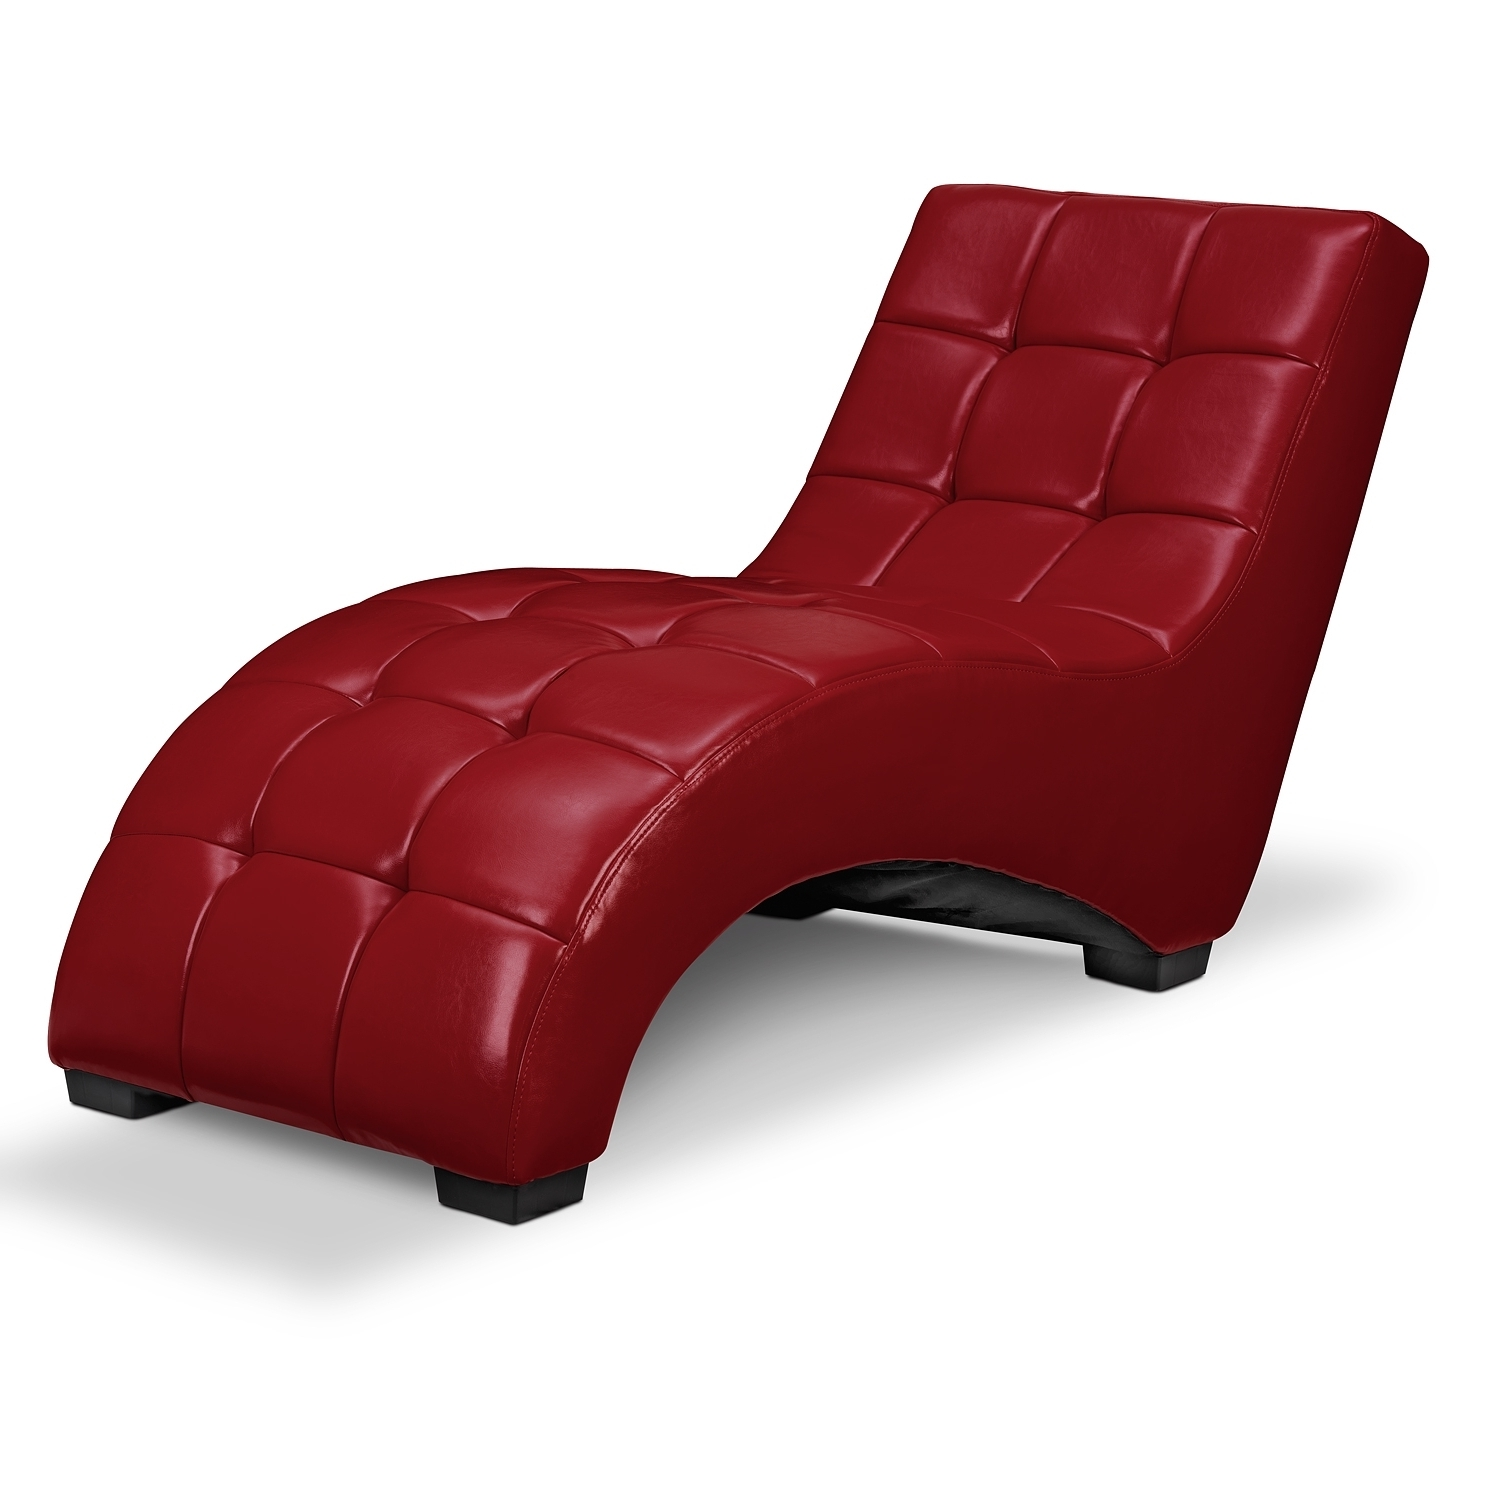 Red Chaise Lounges With Regard To Well Known Red Leather Chaise Lounge Chair • Lounge Chairs Ideas (View 3 of 15)